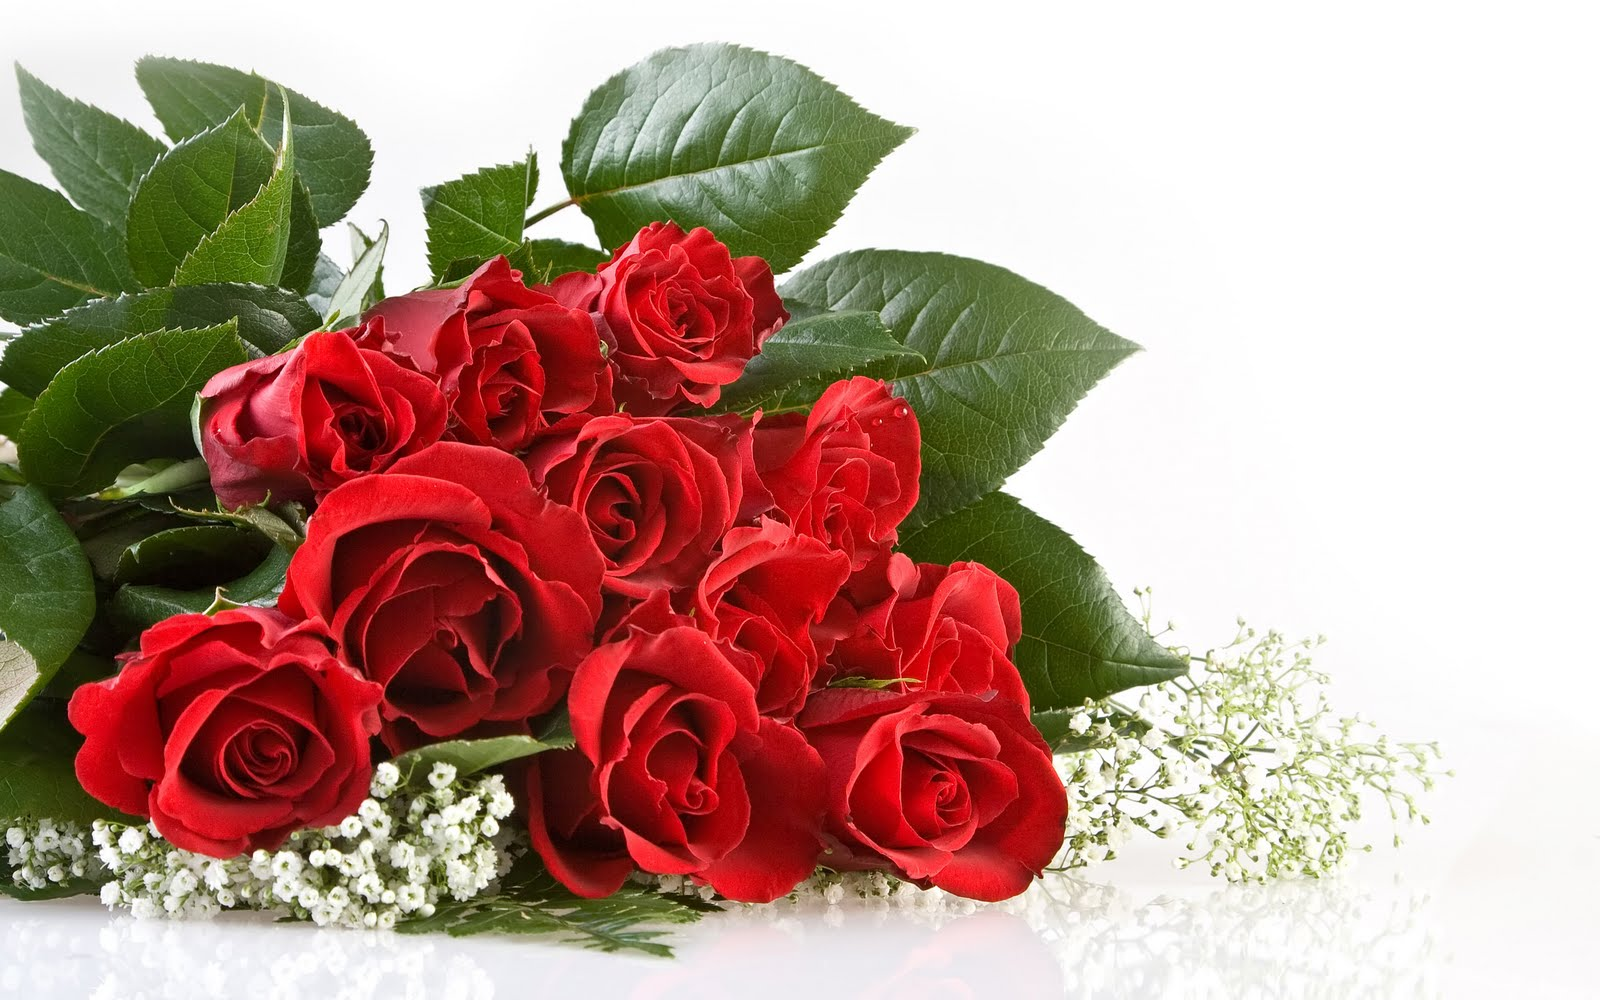 Red rose flowers beautiful cool wallpapers - Bunch of roses hd images ...